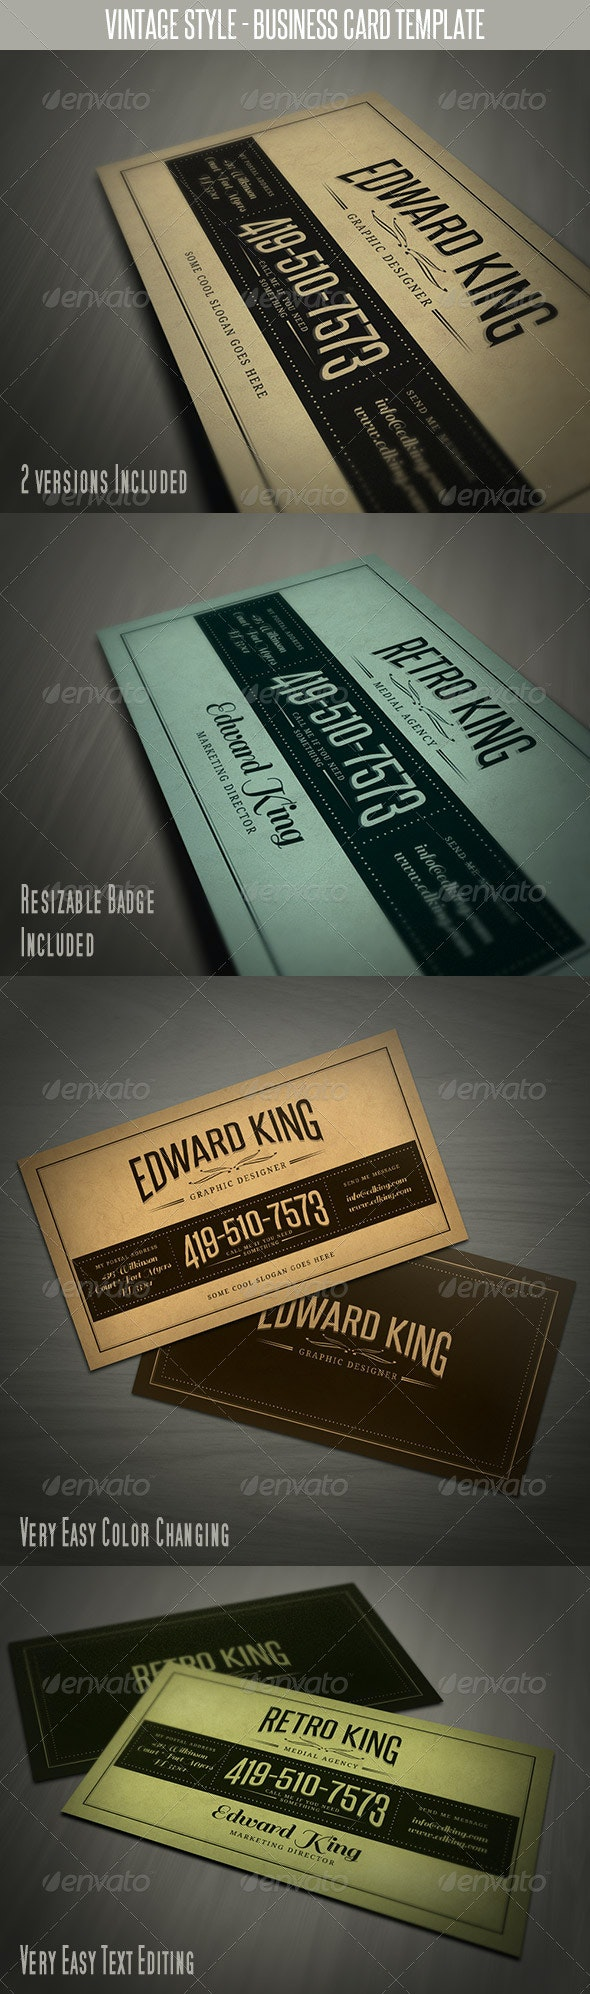 Vintage Style Business Card Template - Retro/Vintage Business Cards